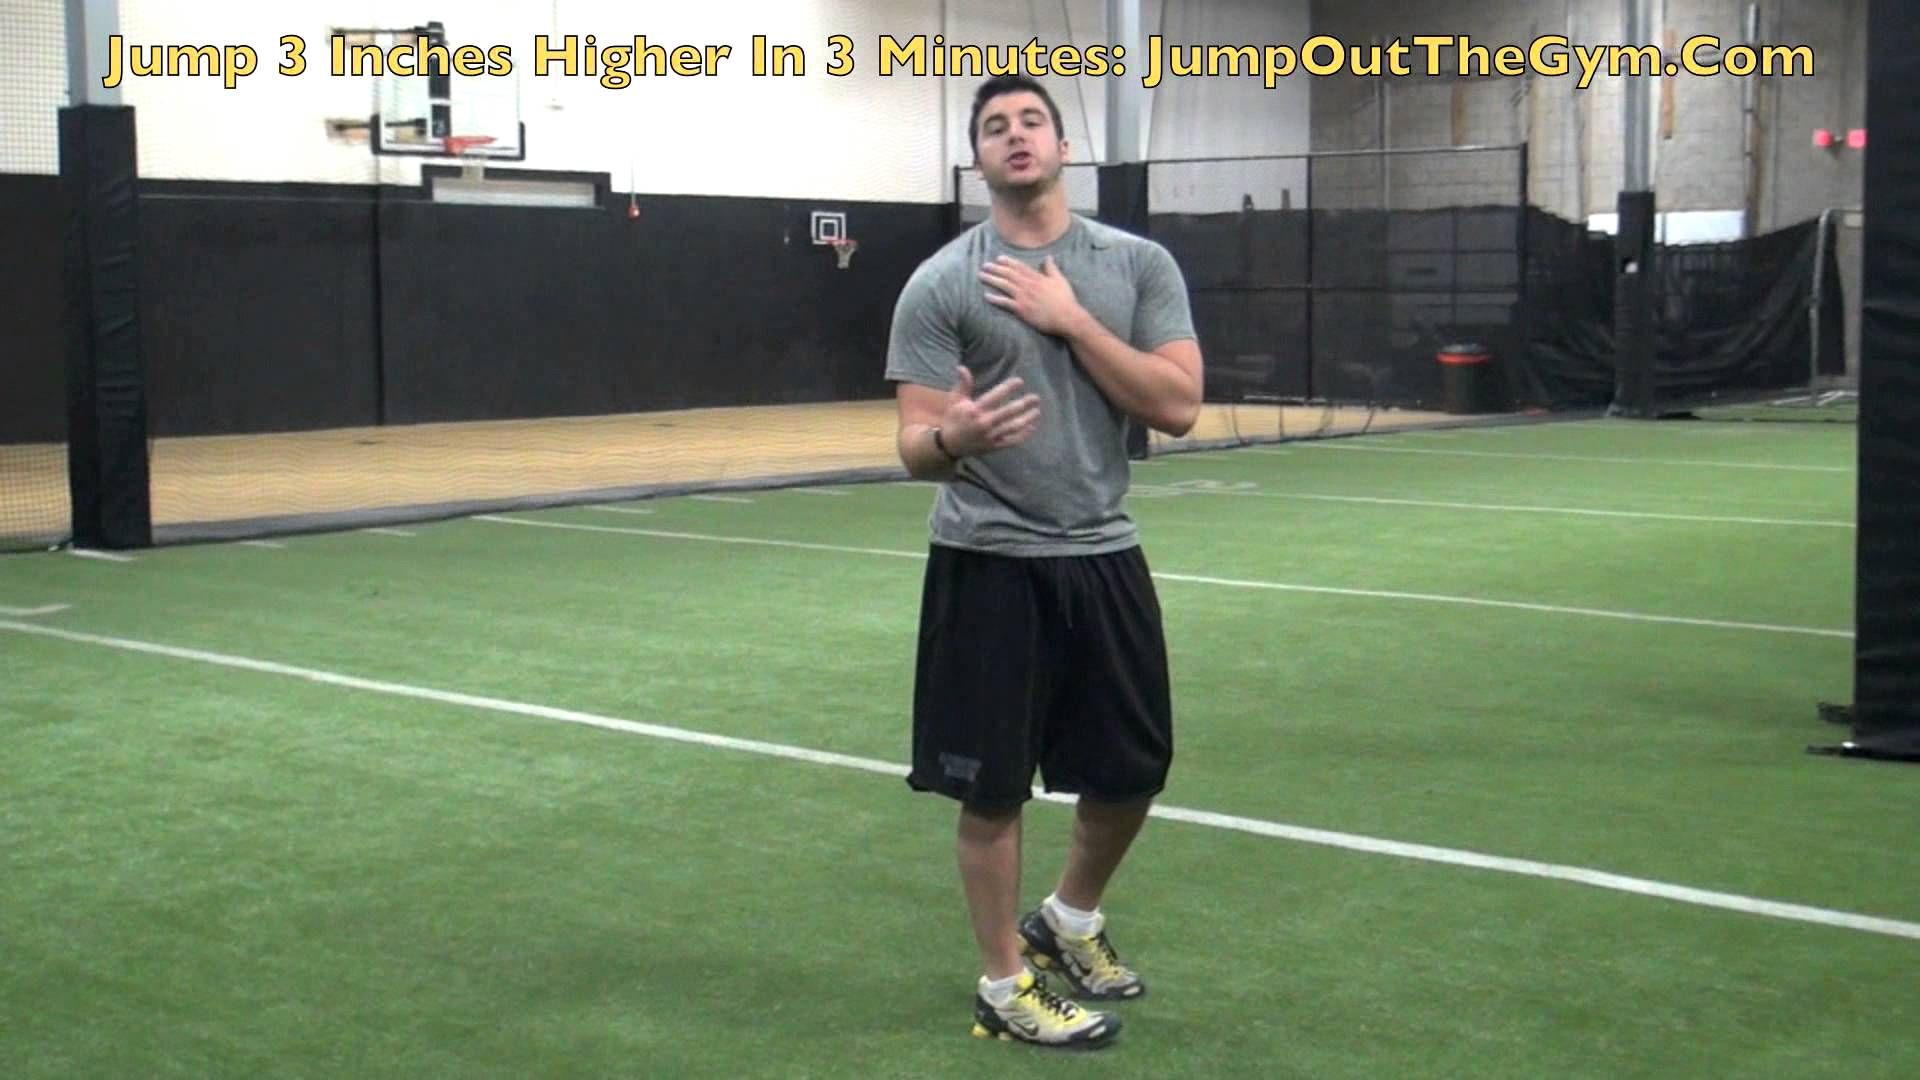 Instantly Jump Higher With These 2 Vertical Jump Exercises High Jump Vertical Jump Workout Vertical Jump Training